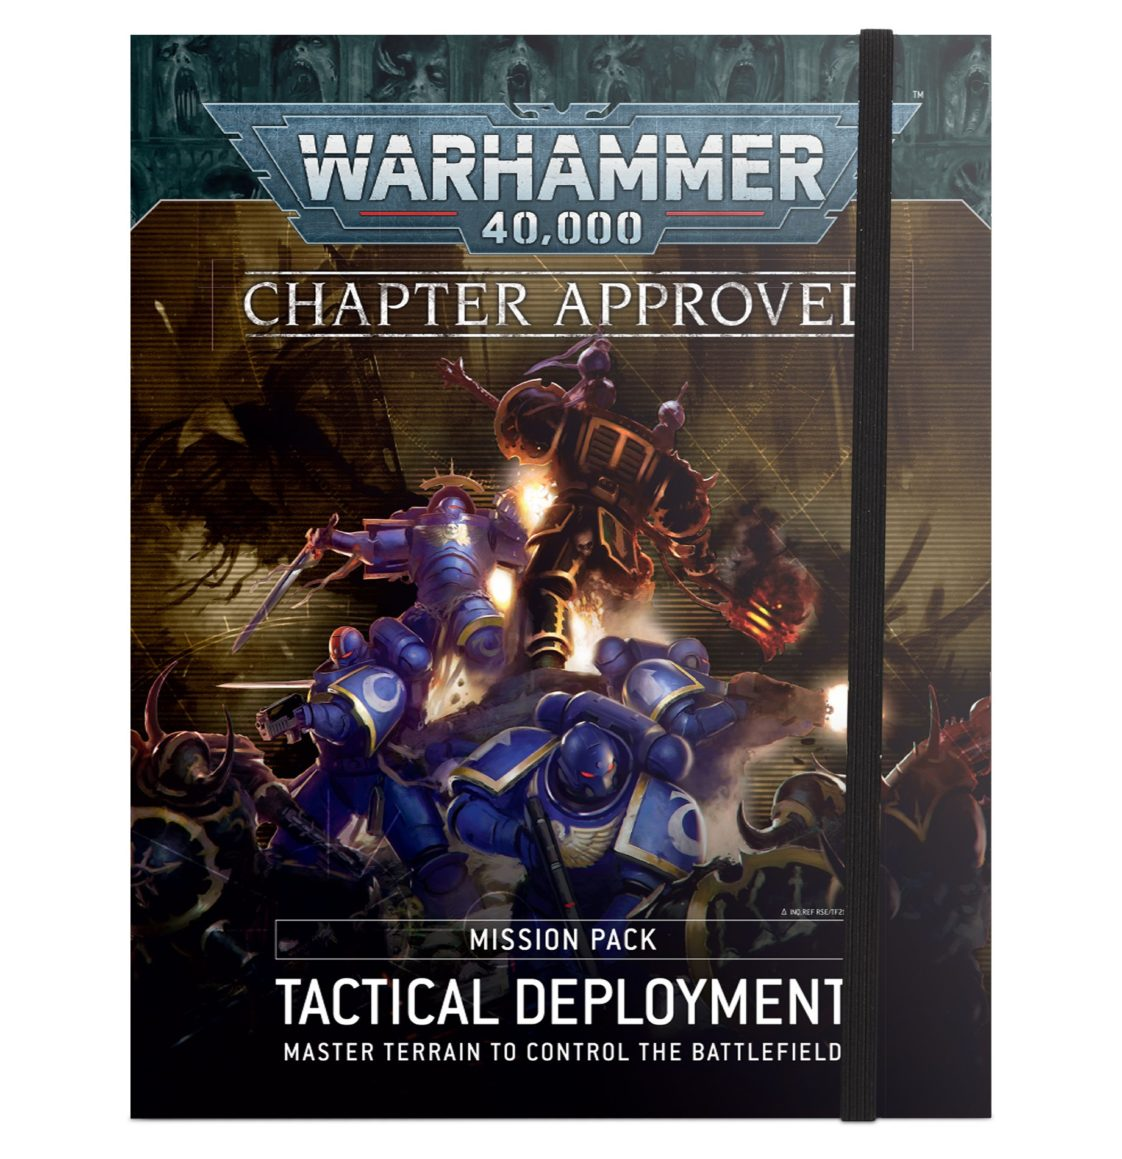 Warhammer 40,000: Tactical Deployment Mission Pack (English)